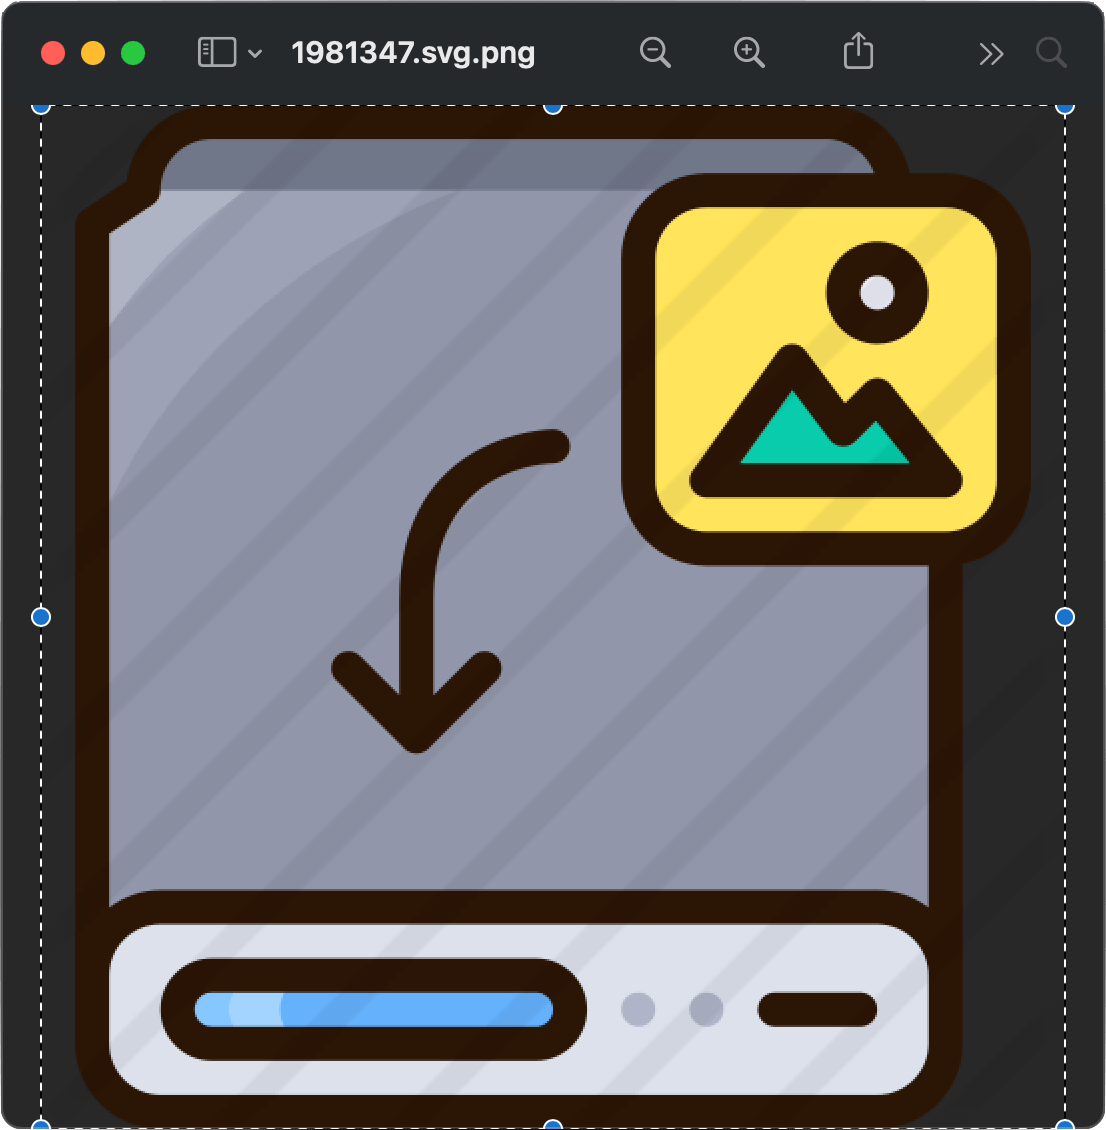 selecting the contents of an icon image file